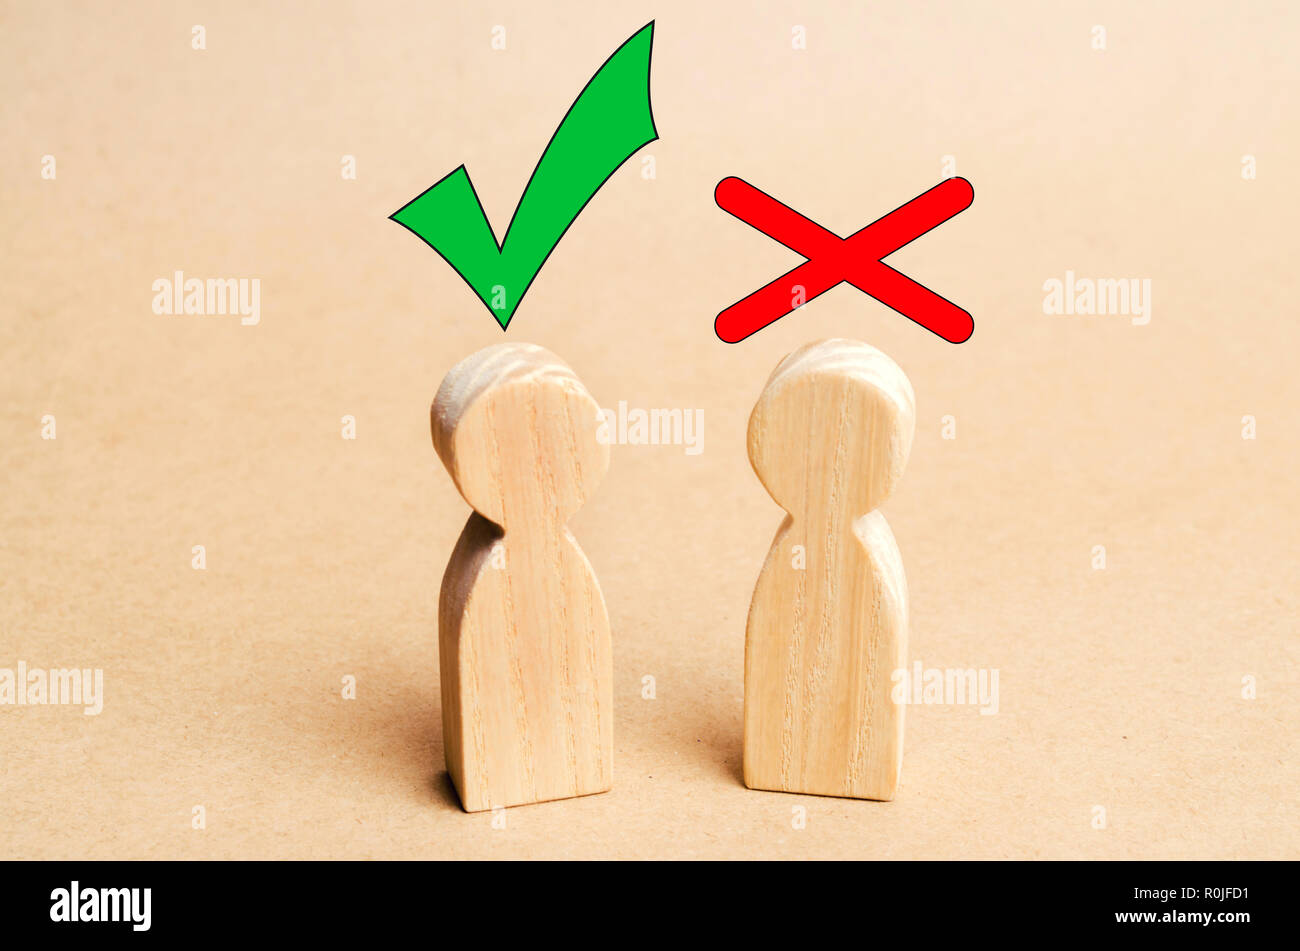 a dispute between people, tension, misunderstanding, family psychology. consent and disagreement - Stock Image